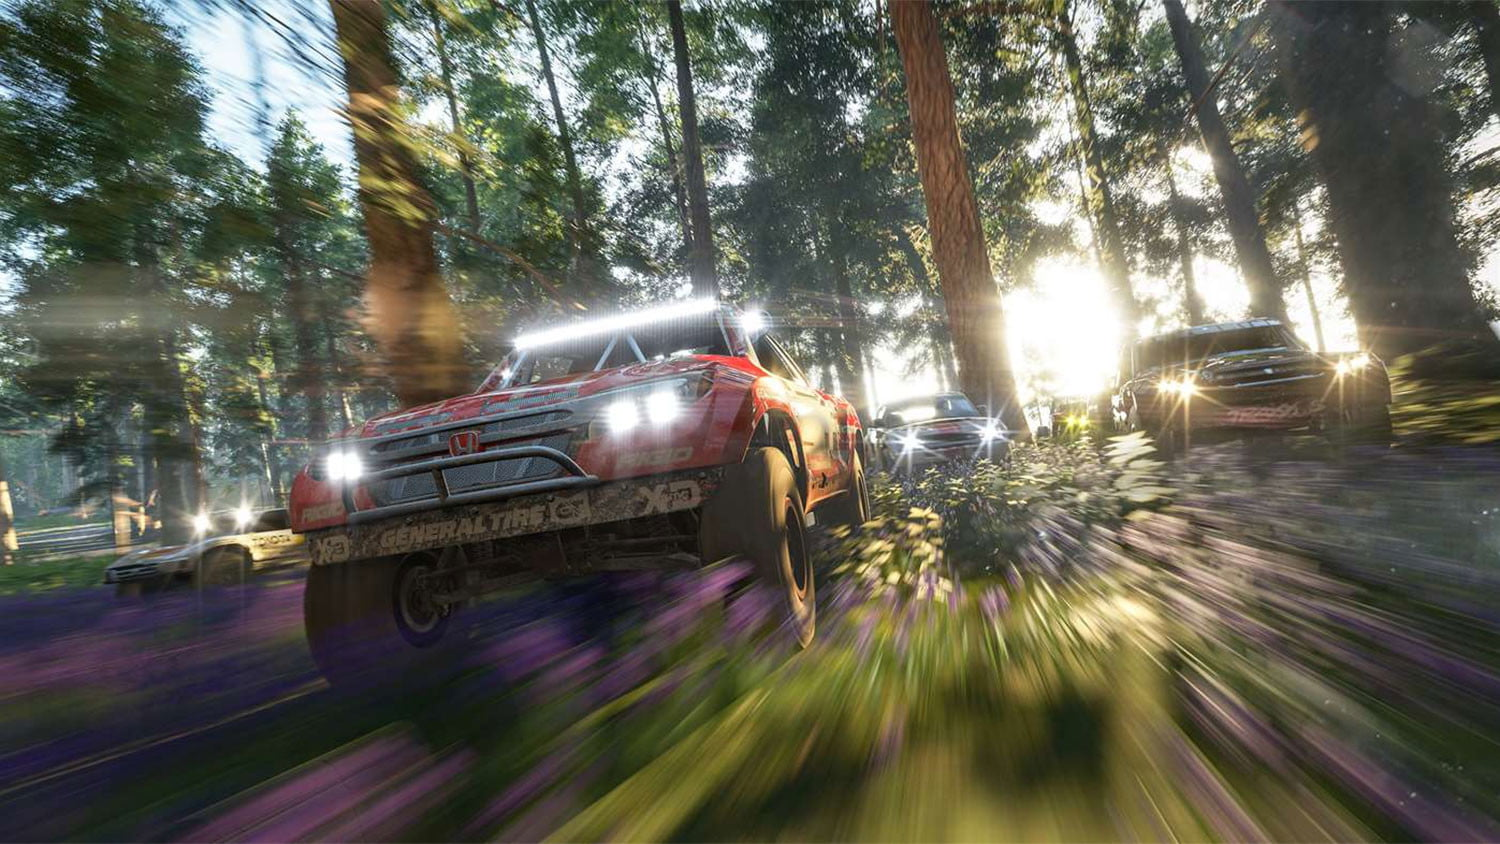 Forza Horizon 4': How to Complete the Lumberjack Skill   Digital Trends